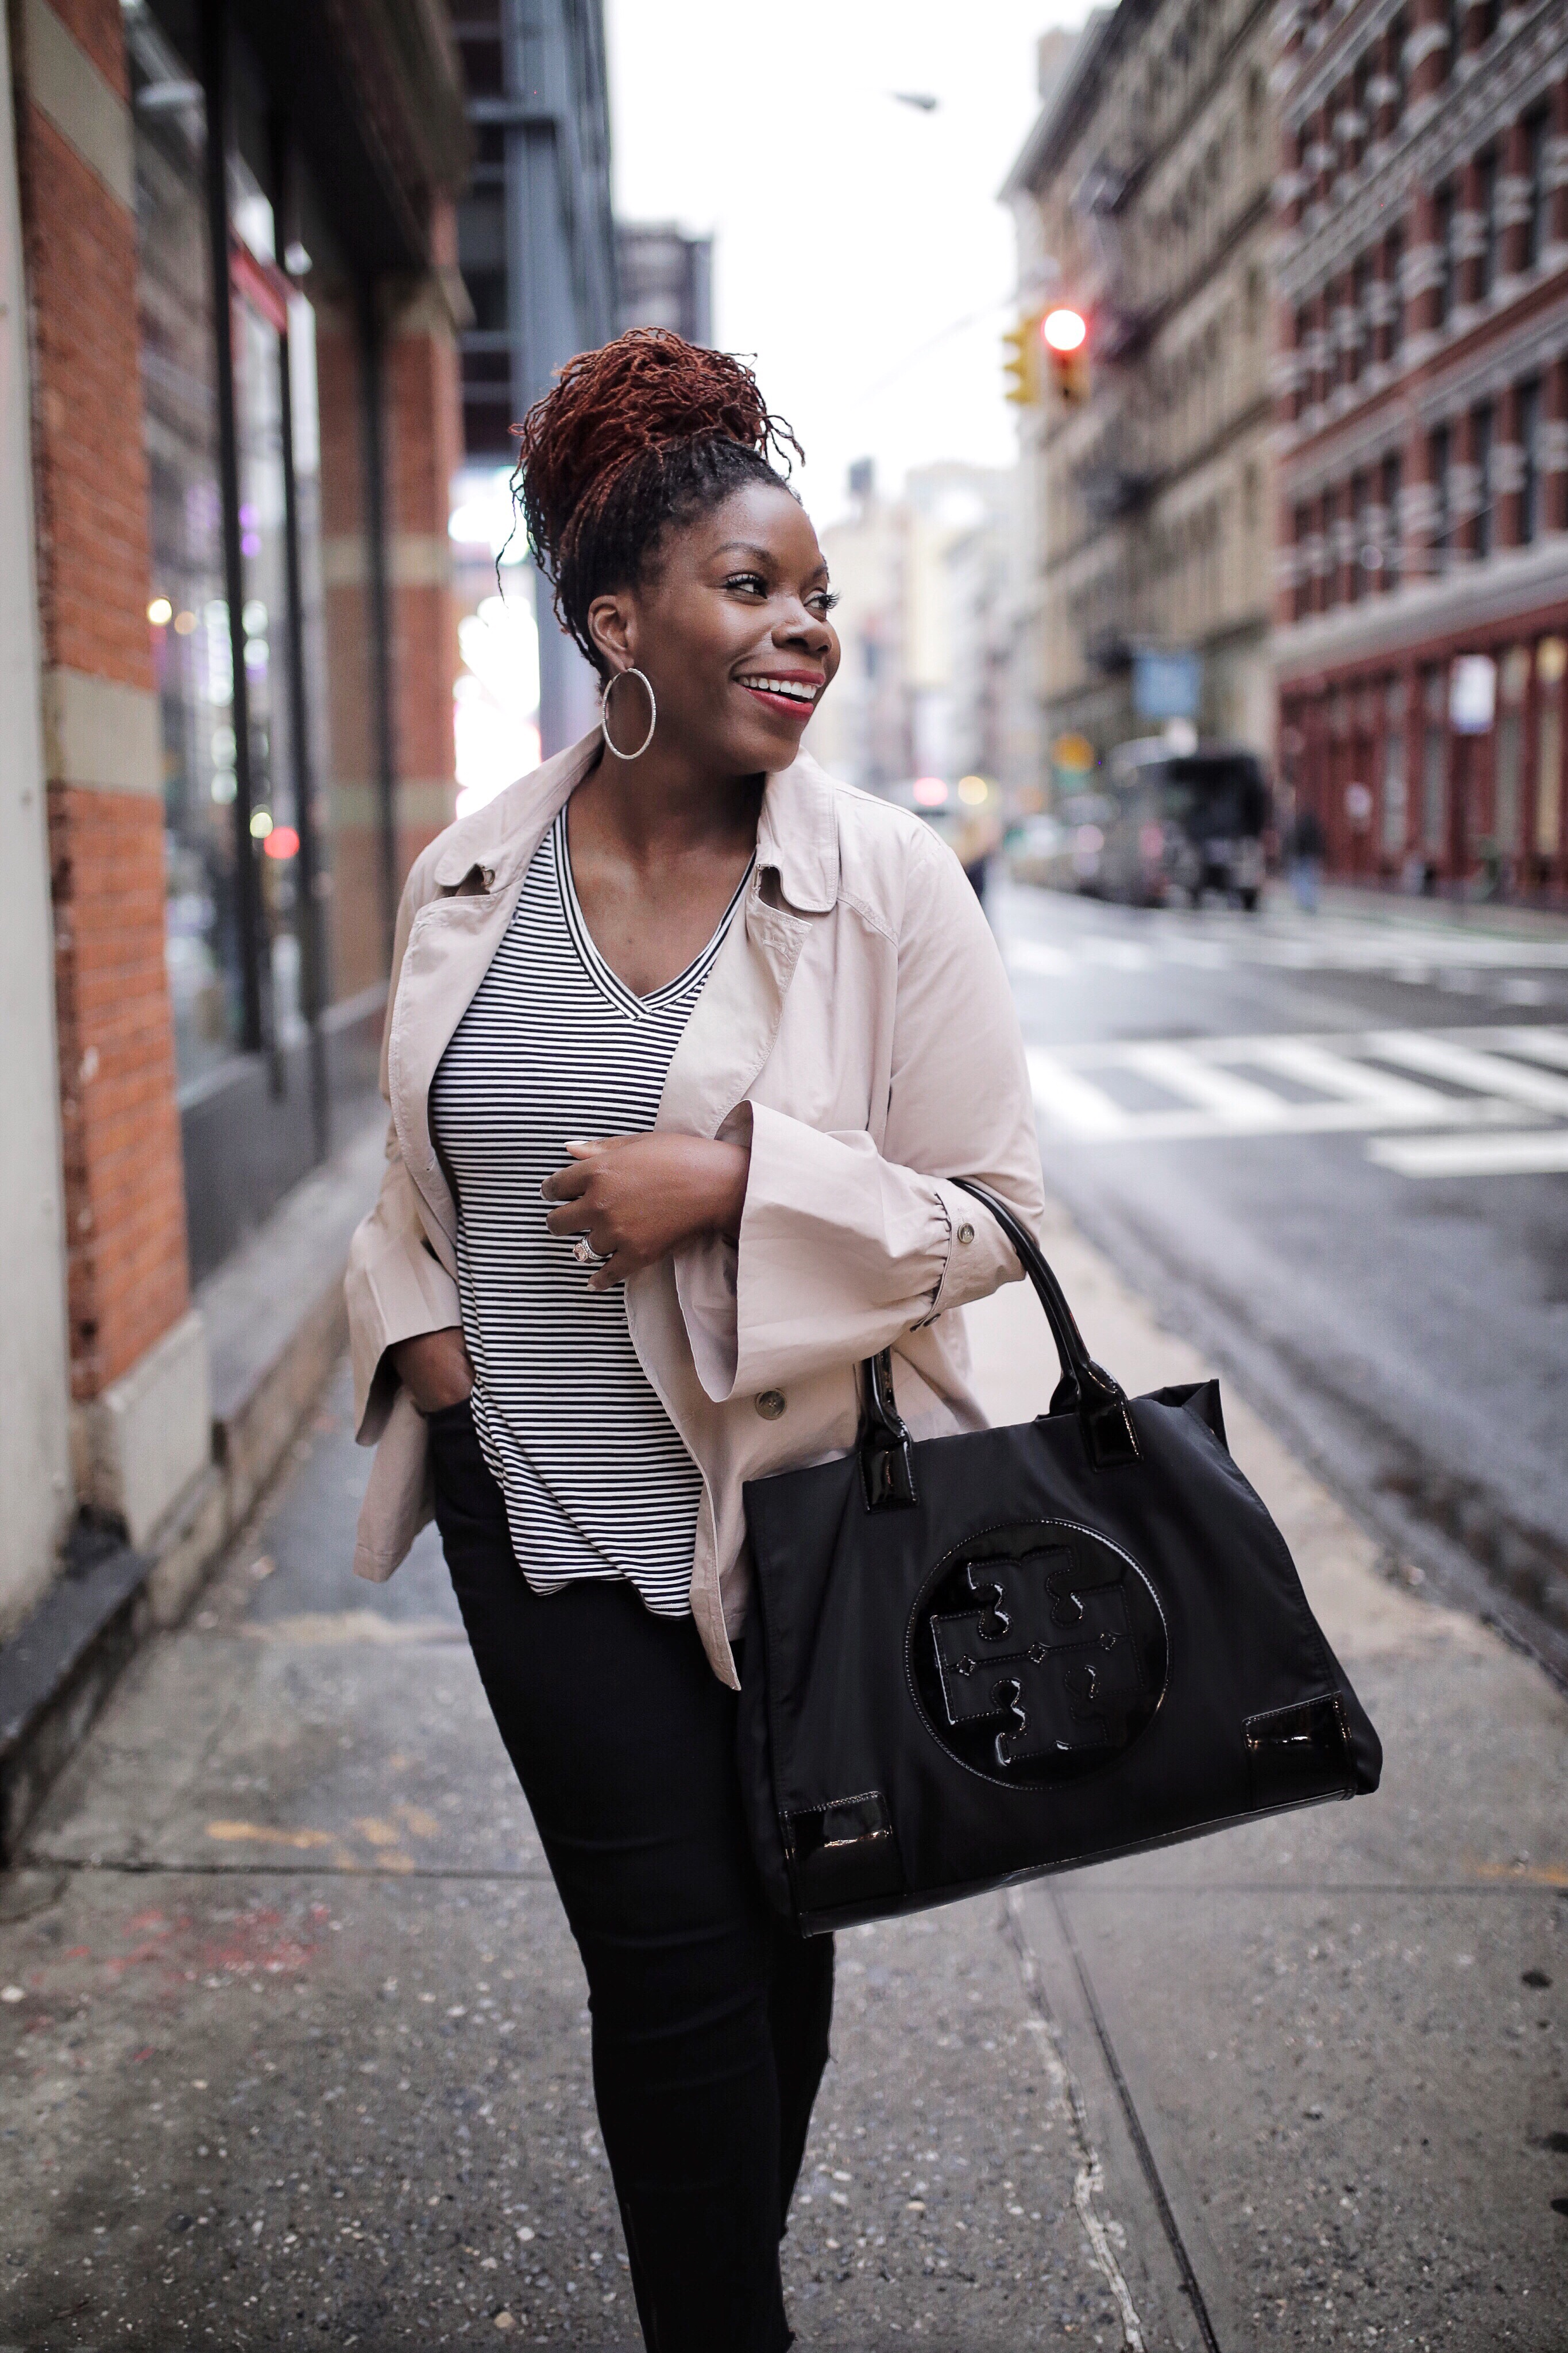 lifestyle blogger sandra downie talks about how to overcome comparison as a lifestyle blogger